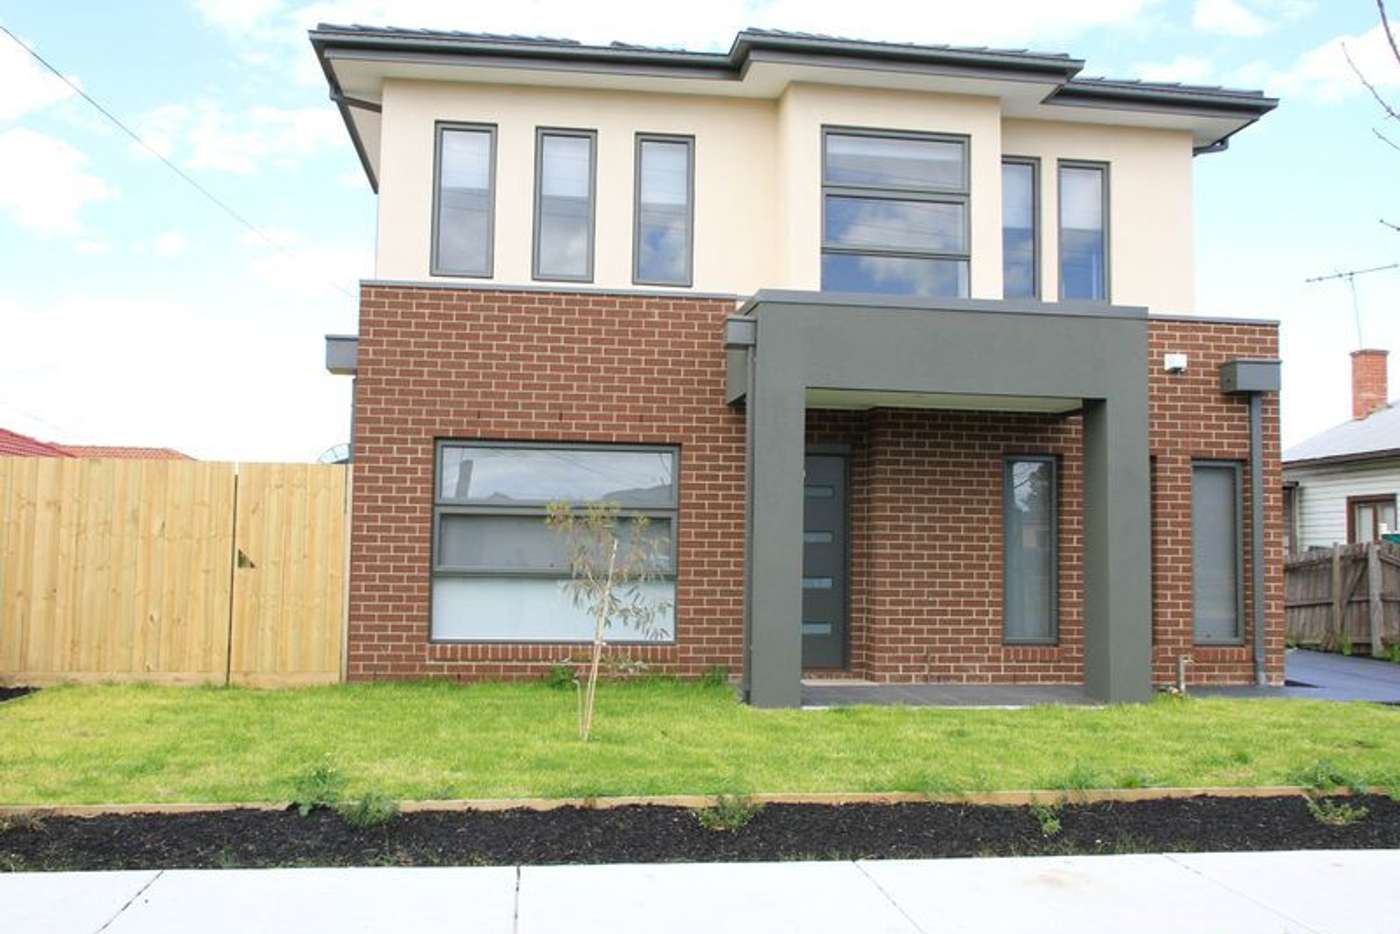 Main view of Homely townhouse listing, 1/23 Princess Avenue, Springvale VIC 3171